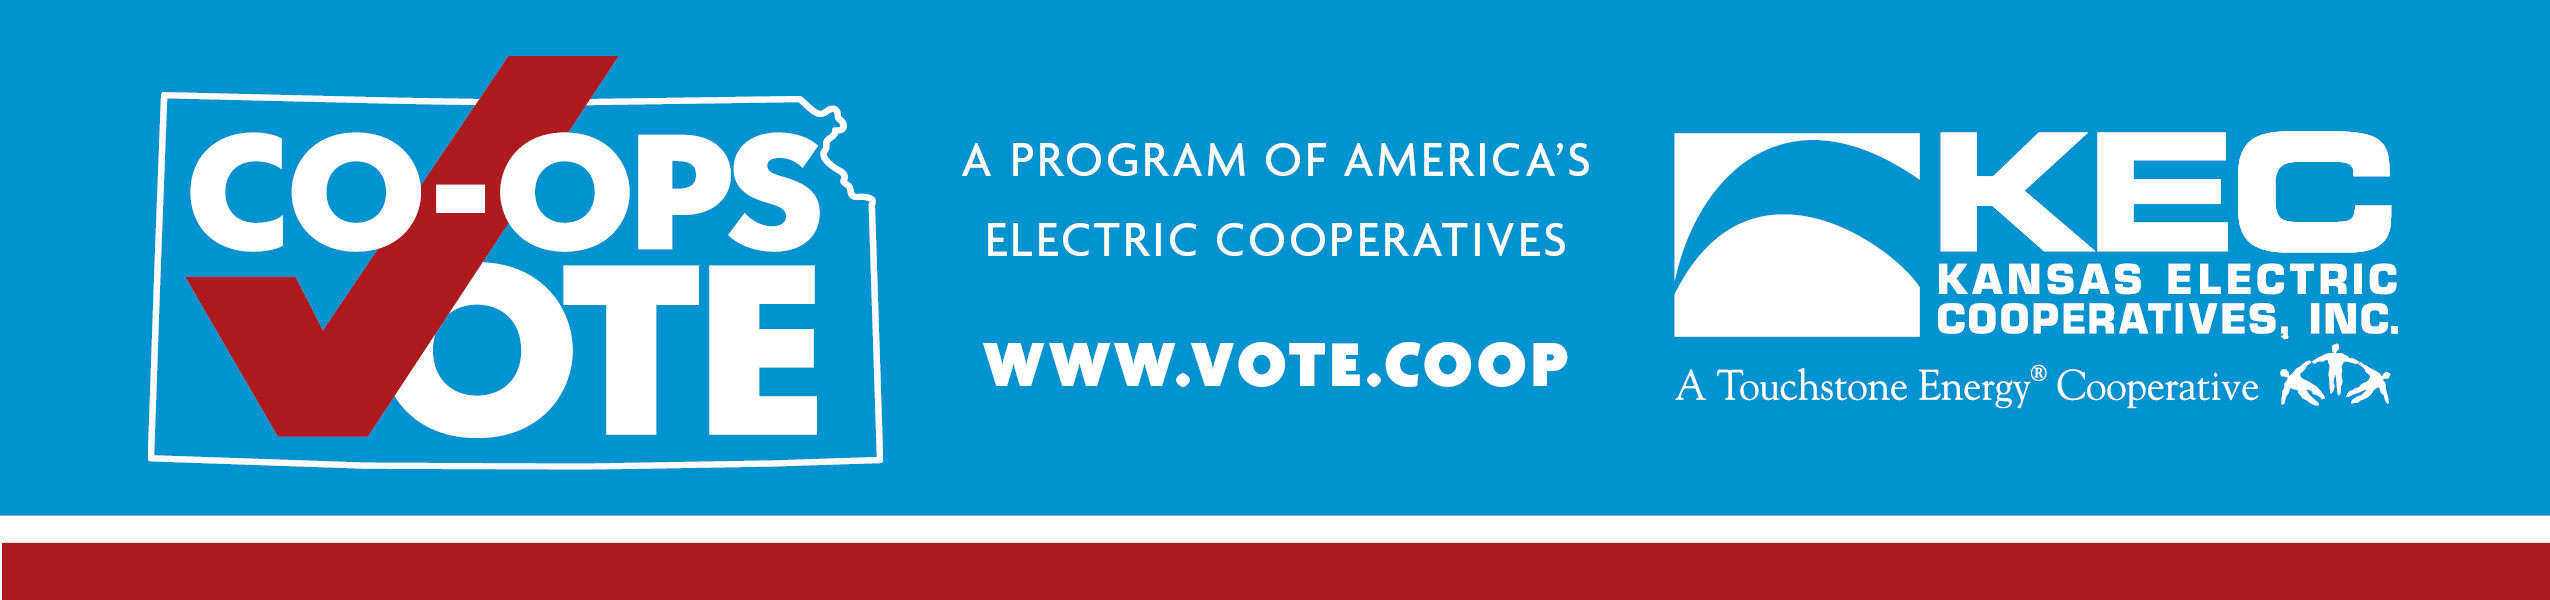 Co-ops Vote Logo and Header